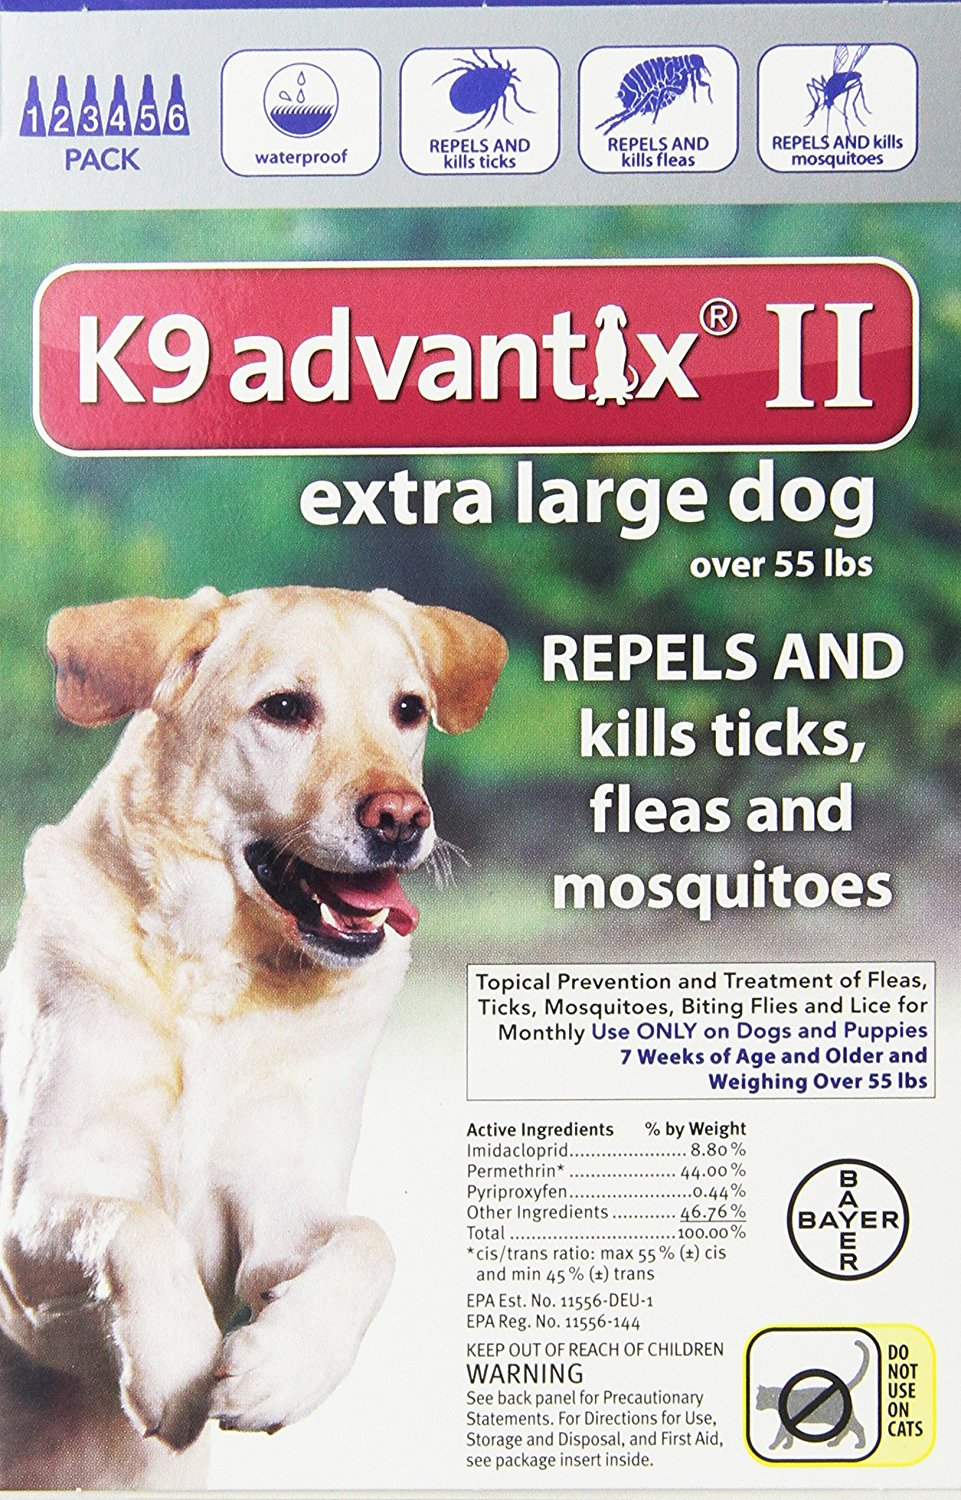 7 10 Best Flea and Tick Prevention Products for Your Pet